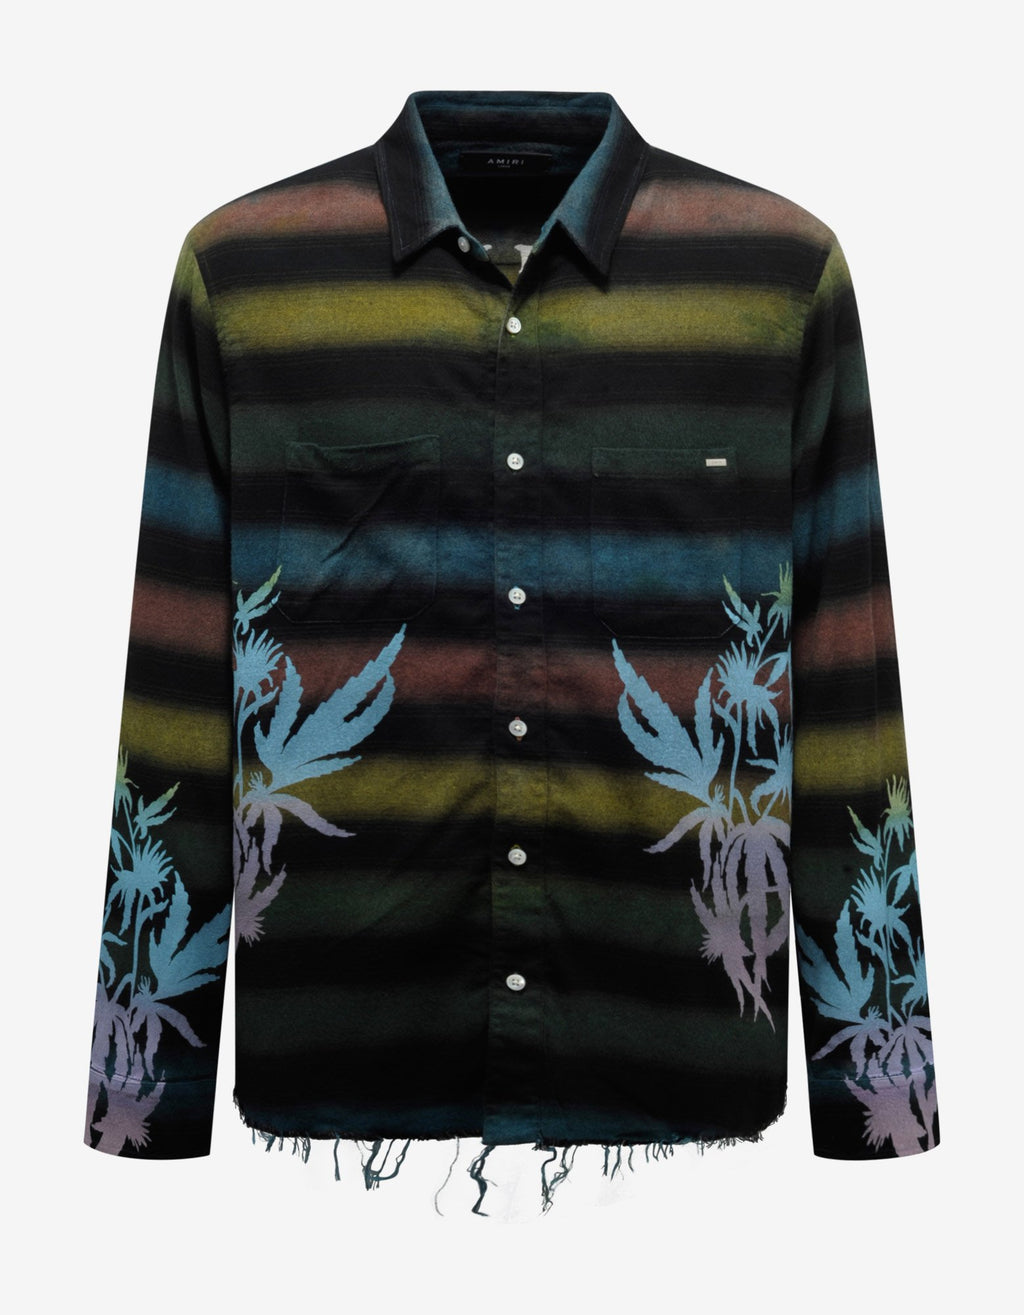 Printed Leaves Horizontal Stripe Flannel Shirt -